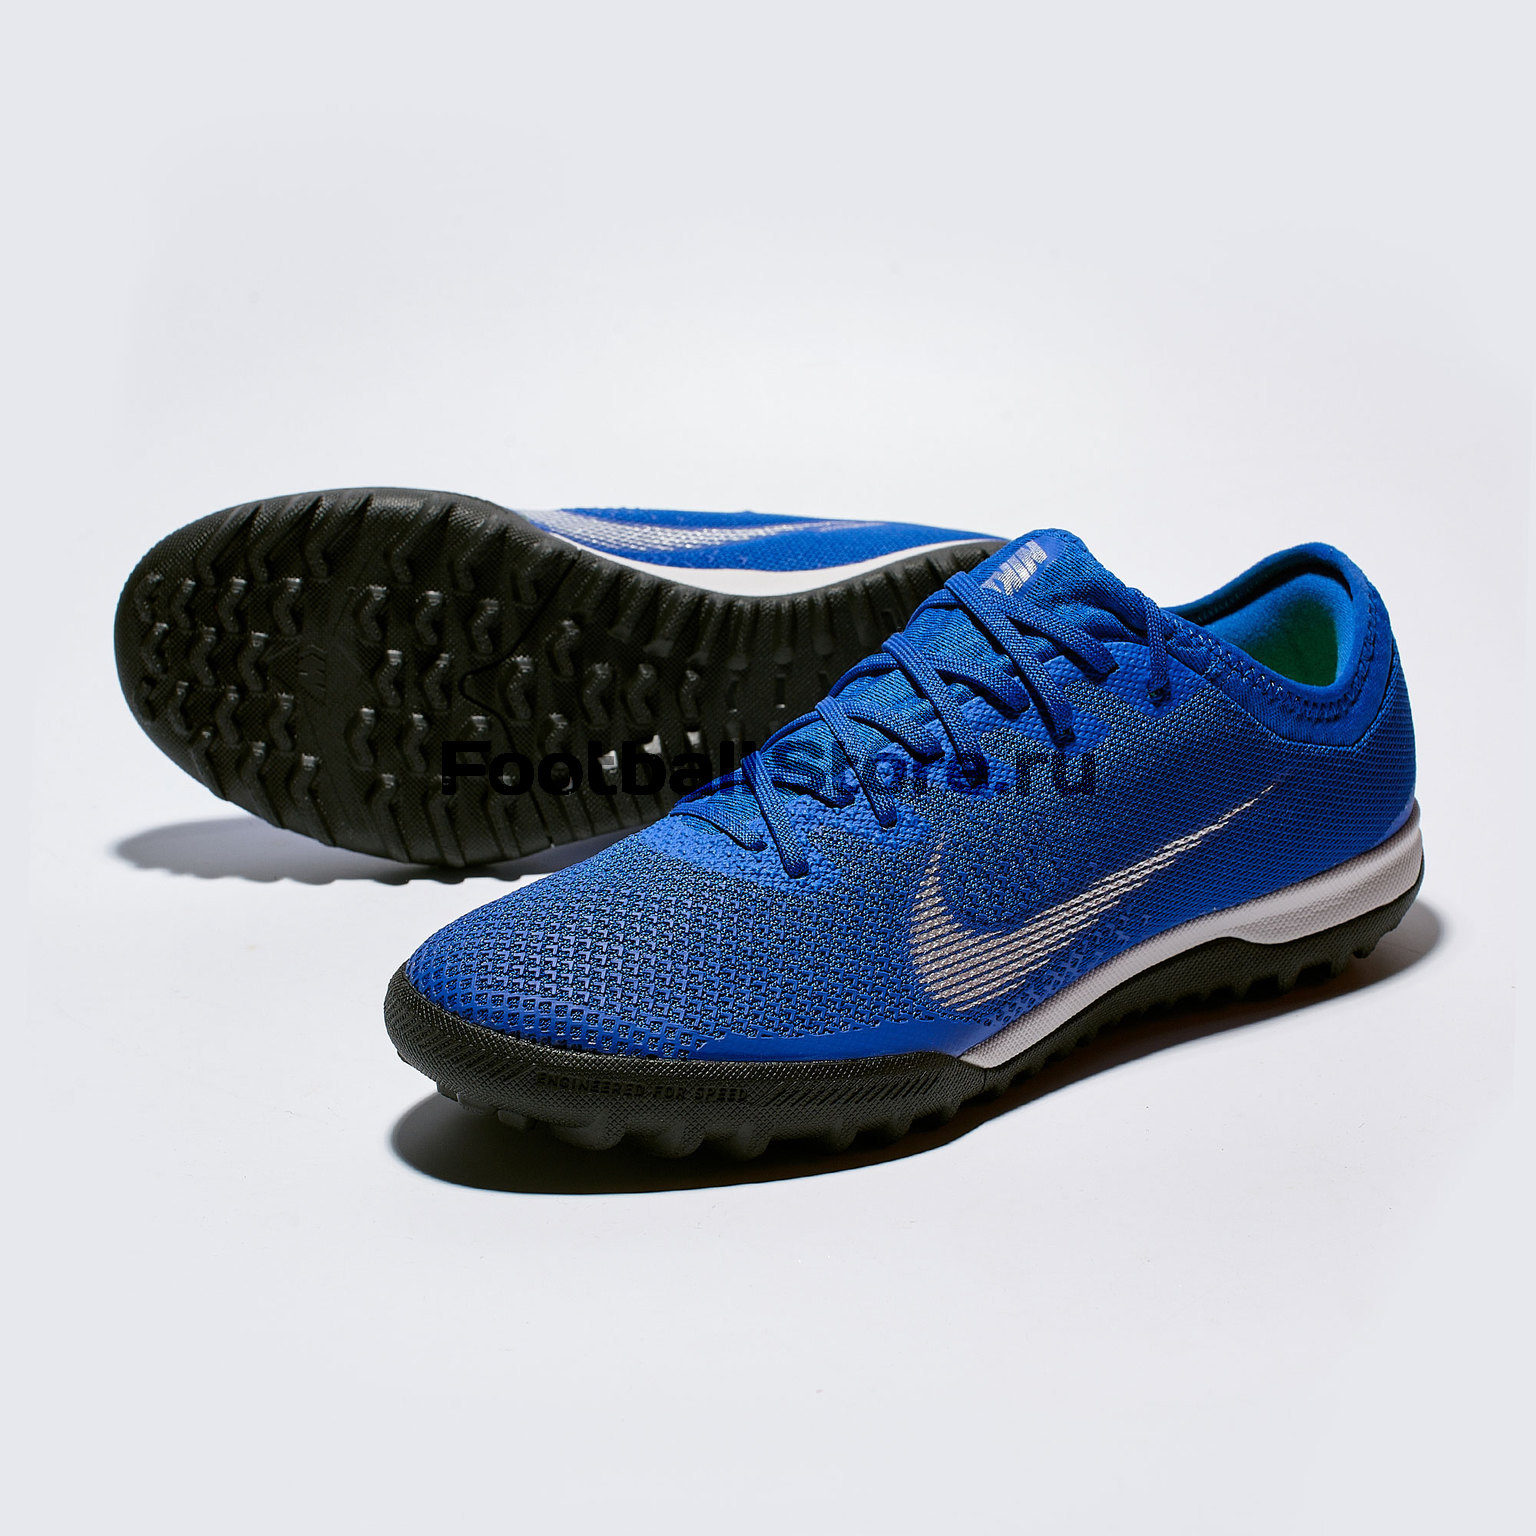 Шиповки Nike Vapor 12 Pro TF AH7388-400 nike vapor pro low d men s detachable football cleats